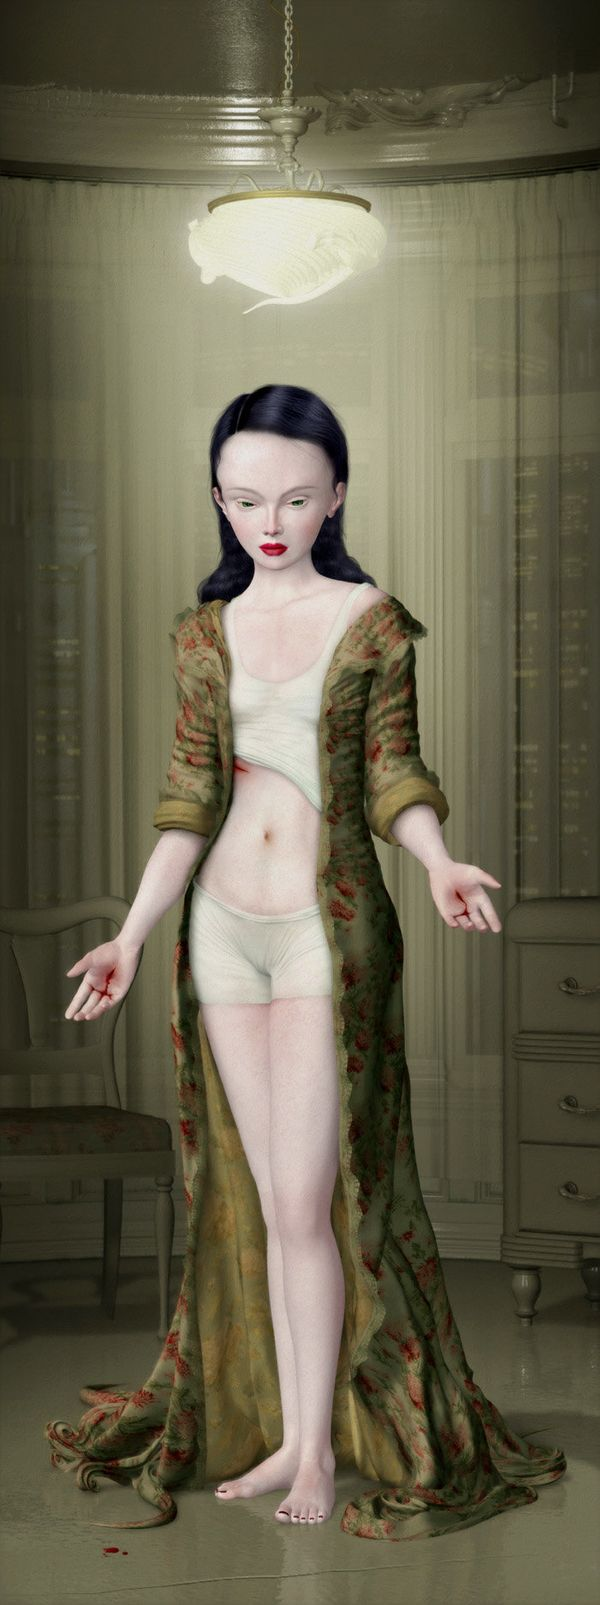 """Stigmata"" by Ray Caesar Crufixion at Corey Helford Gallery"